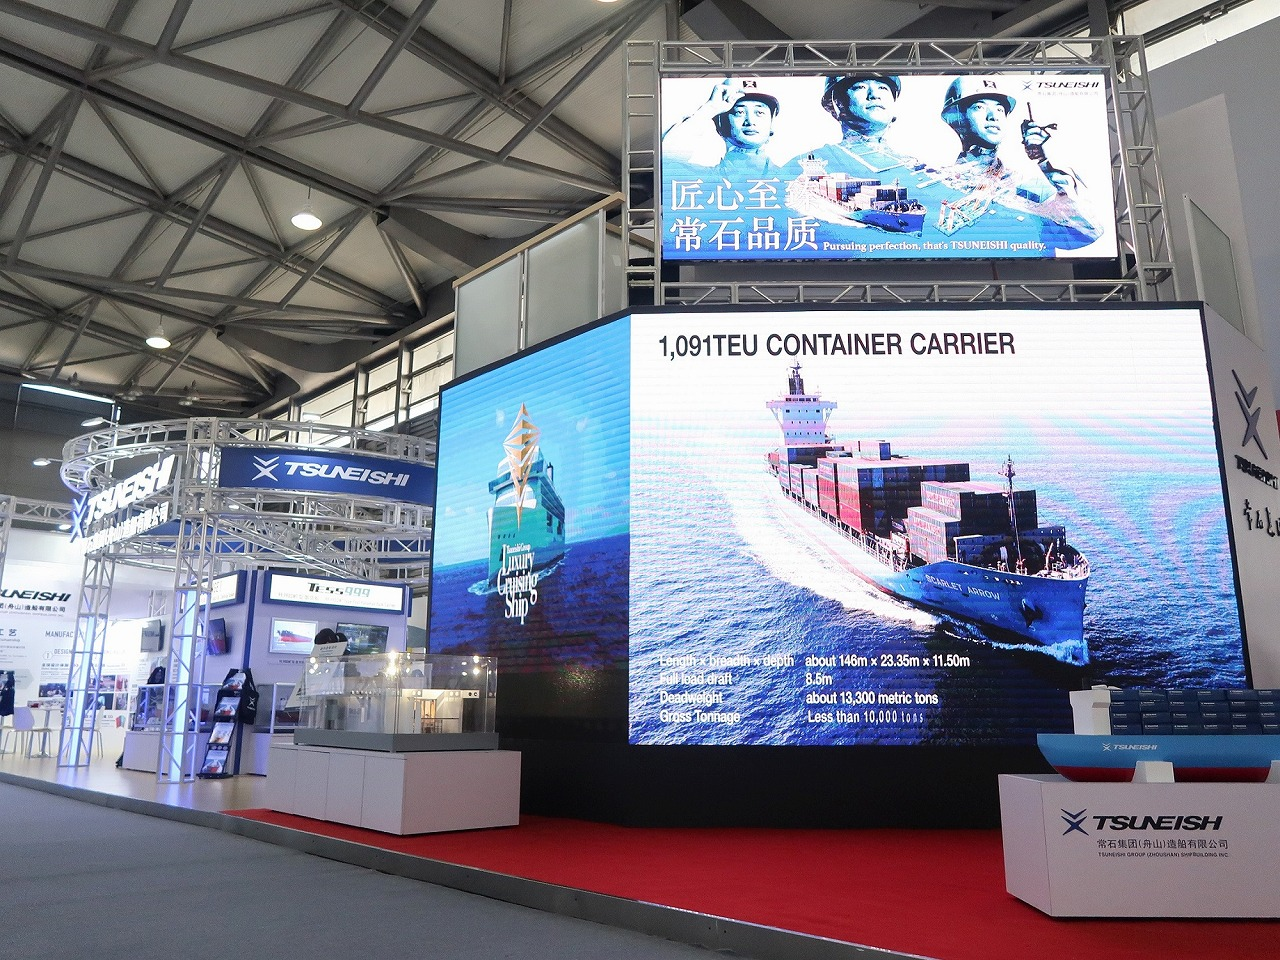 TSUNEISHI GROUP (ZHOUSHAN) SHIPBUILDING exhibited at MARINTEC CHINA 2019, one of Asia's largest international maritime exhibitions